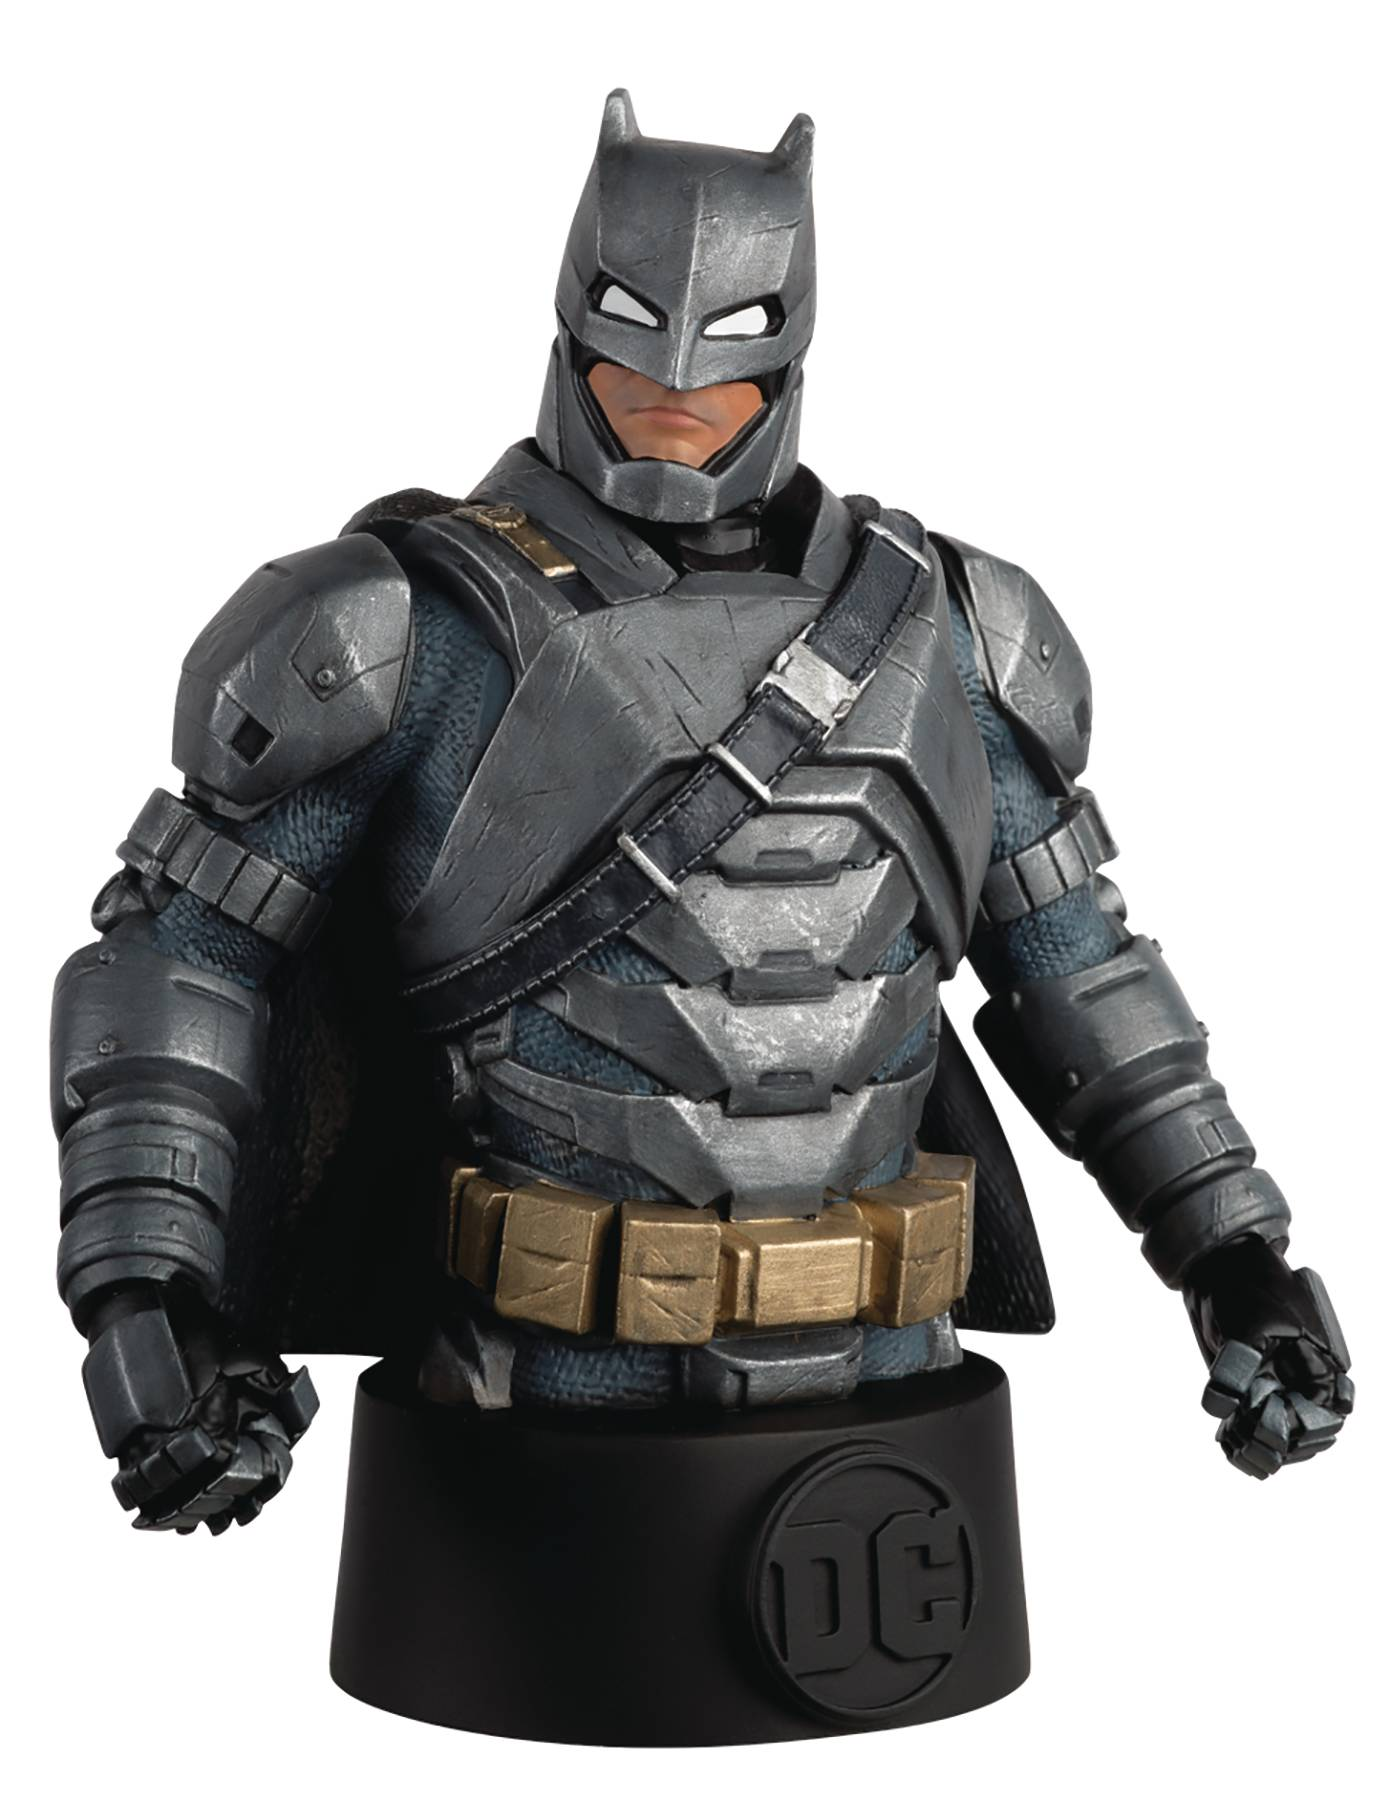 Eaglemoss DC Comics Batman Universe Armored Batman Bust